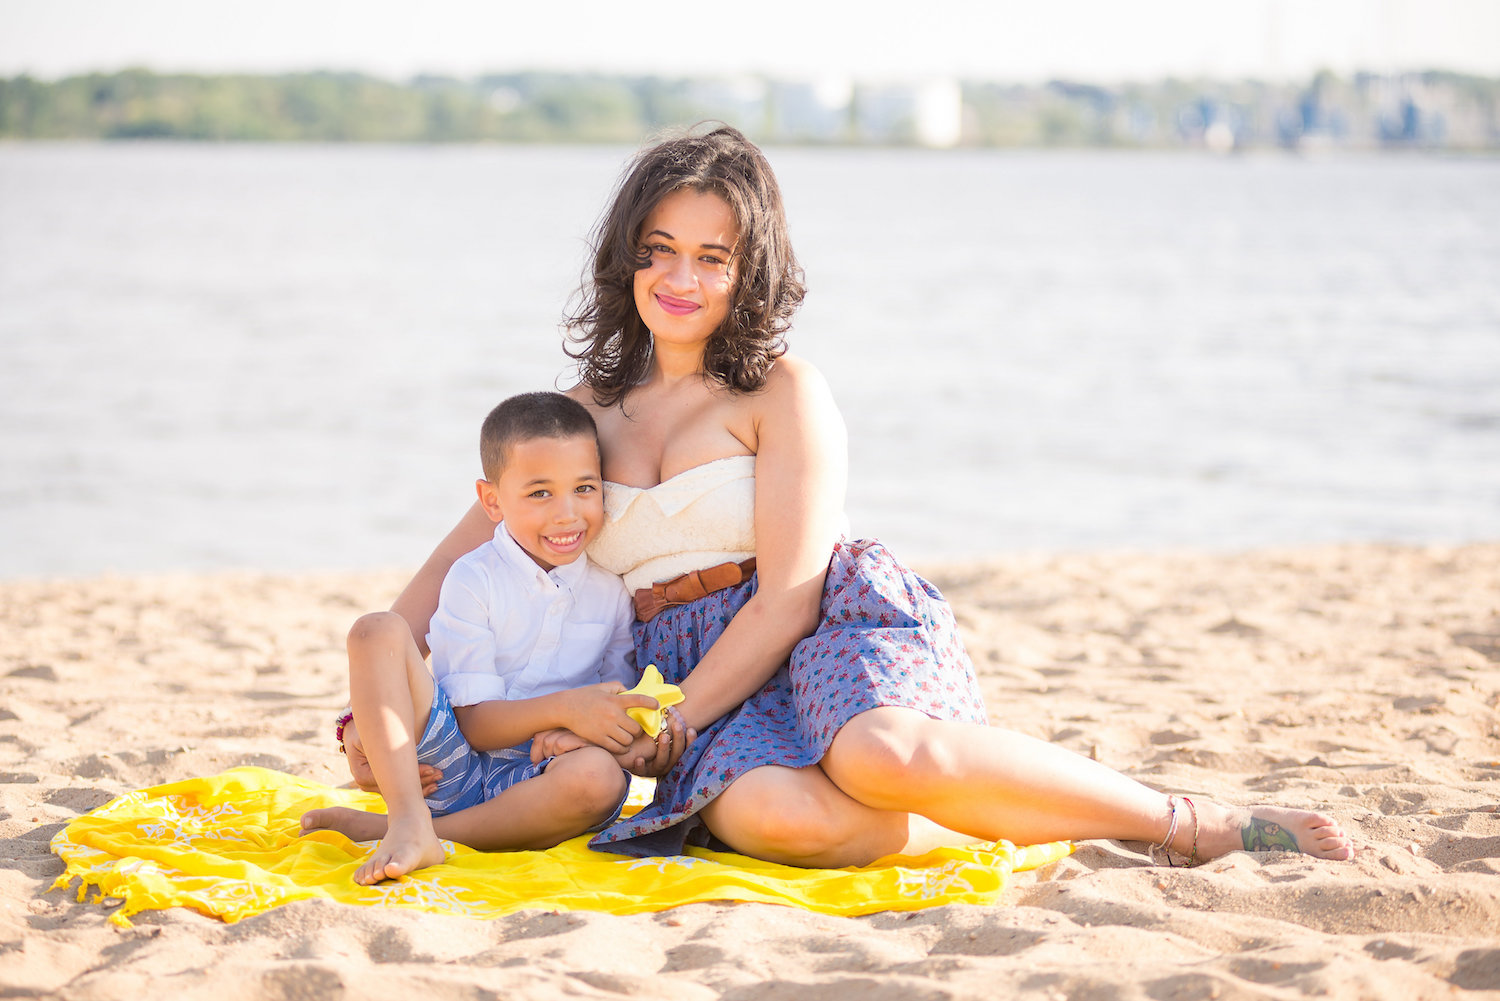 South amboy NJ new jersey family photographer